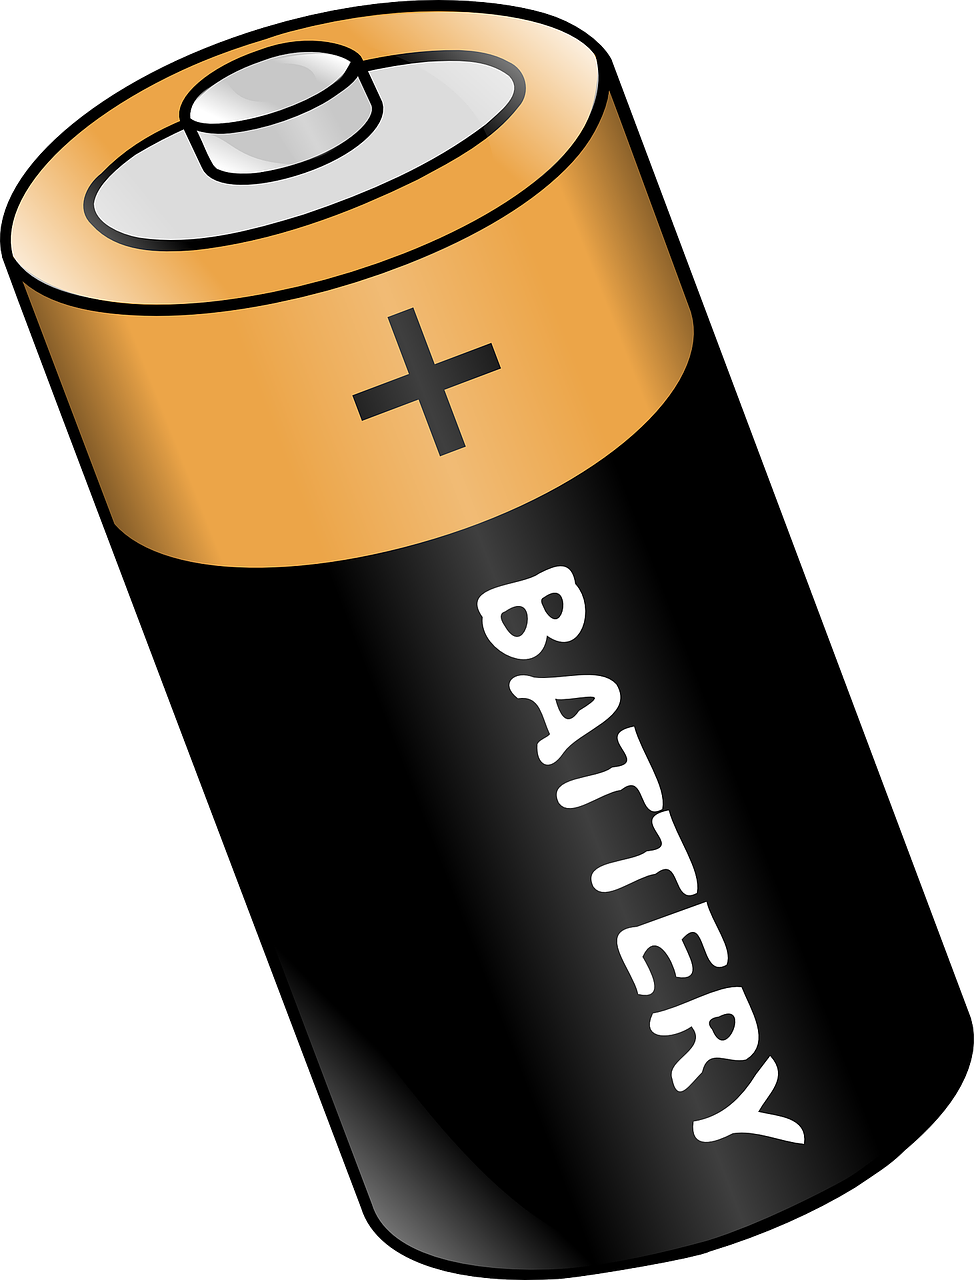 battery alakaline battery battery power free photo